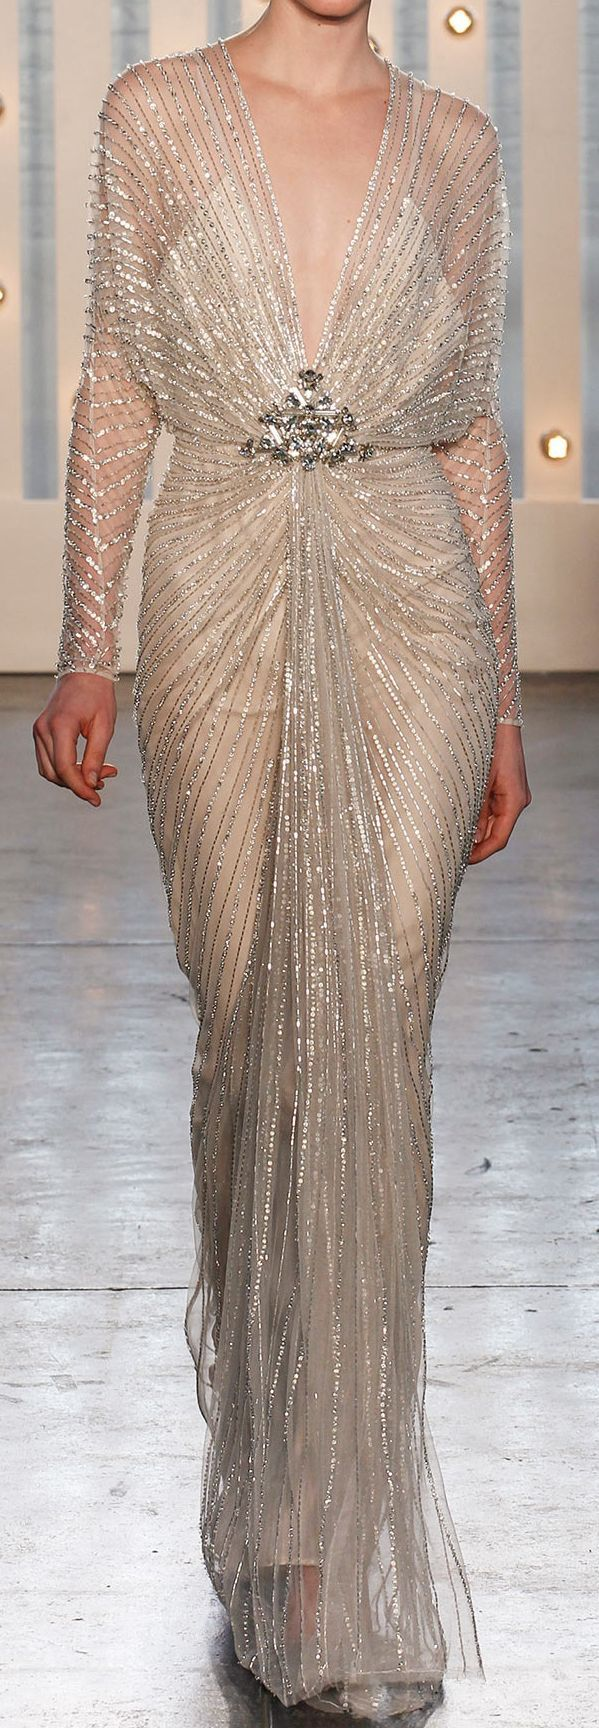 Jenny Packham vintage inspired gown this could be dress one... http://www.style.com/fashionshows/complete/slideshow/F2014RTW-JPACKHAM/